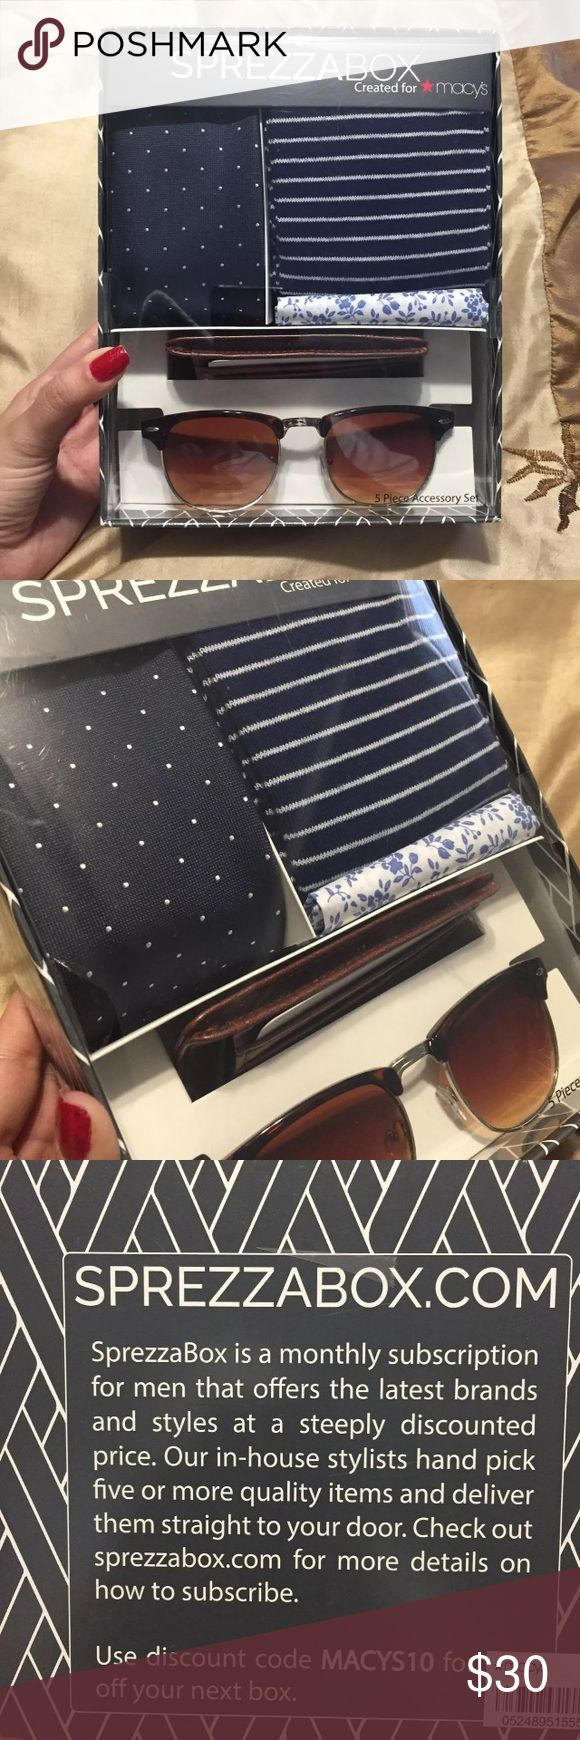 👔Men's 5-Pc Accessory Set!👔 Brand new in box. Sprezza Box created for Macy's. Includes what I believe to be: -tie -socks -pocket square  Wallet/card holder Sunglasses  *FREE TREATS W/ PURCHASE! Macy's Accessories